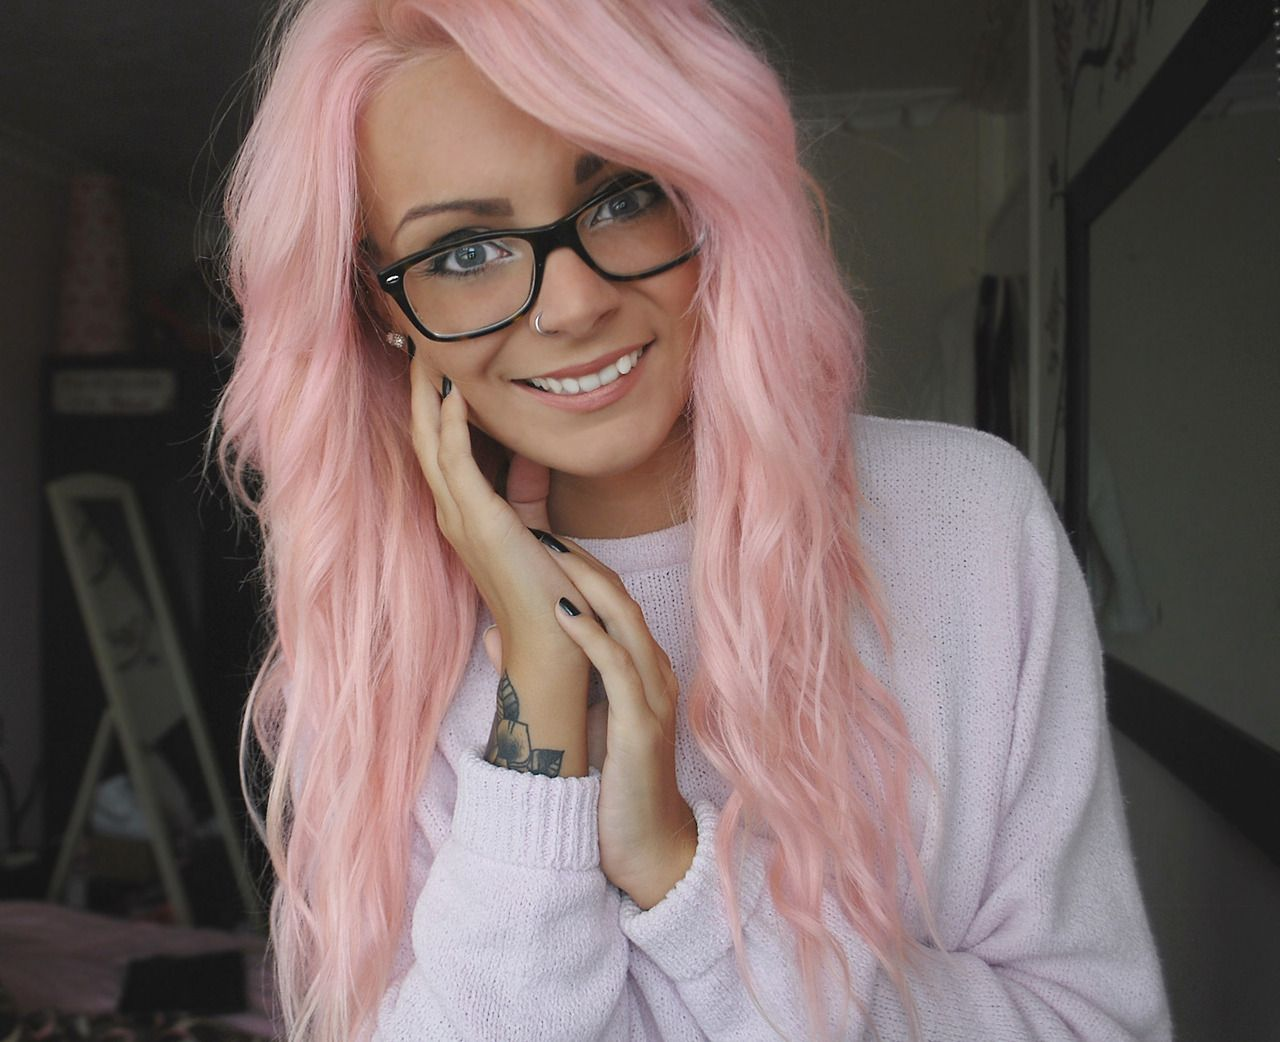 Temporary Electric Ombre Hair Dye | Light pink hair, Pink ...